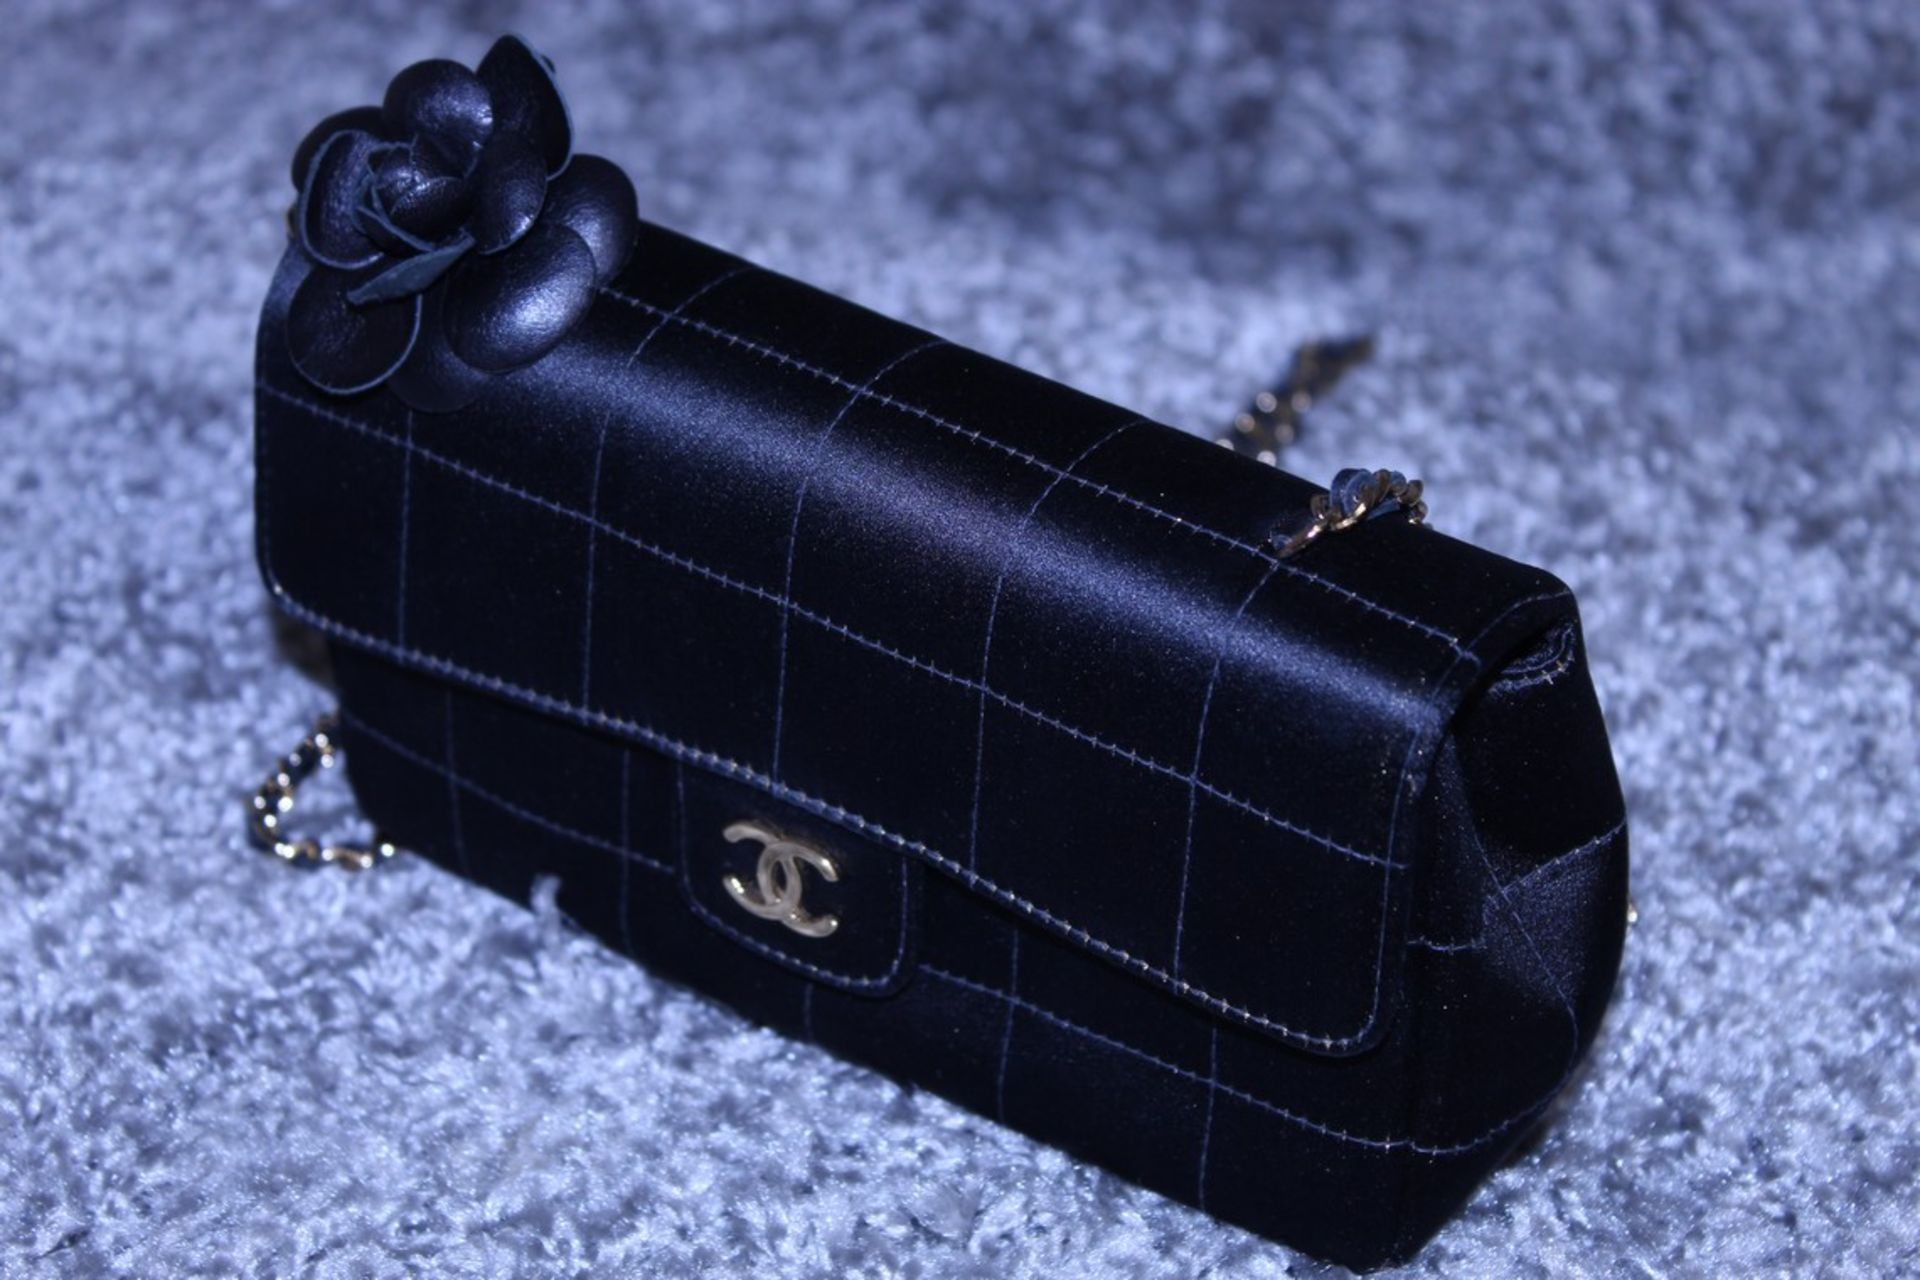 RRP £3,500 Chanel Timess Silk Bag, Black Canvas Square Quilted, Gold Chain Handles (Production - Image 3 of 4